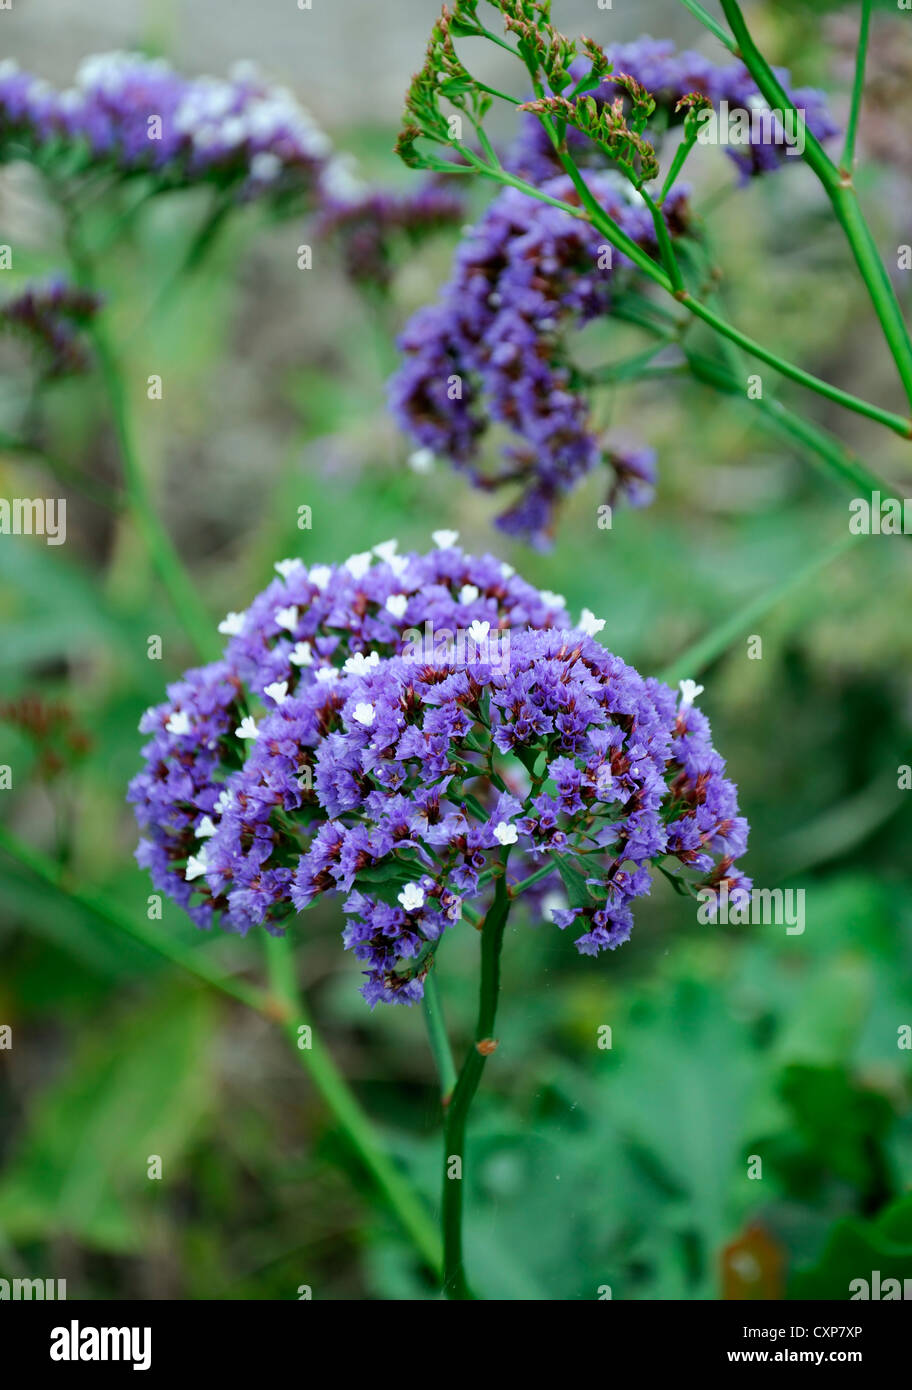 limonium arborescens blue sea lavender tree limonium tree statice blue flowers flowering bloom blossom siempreviva - Stock Image